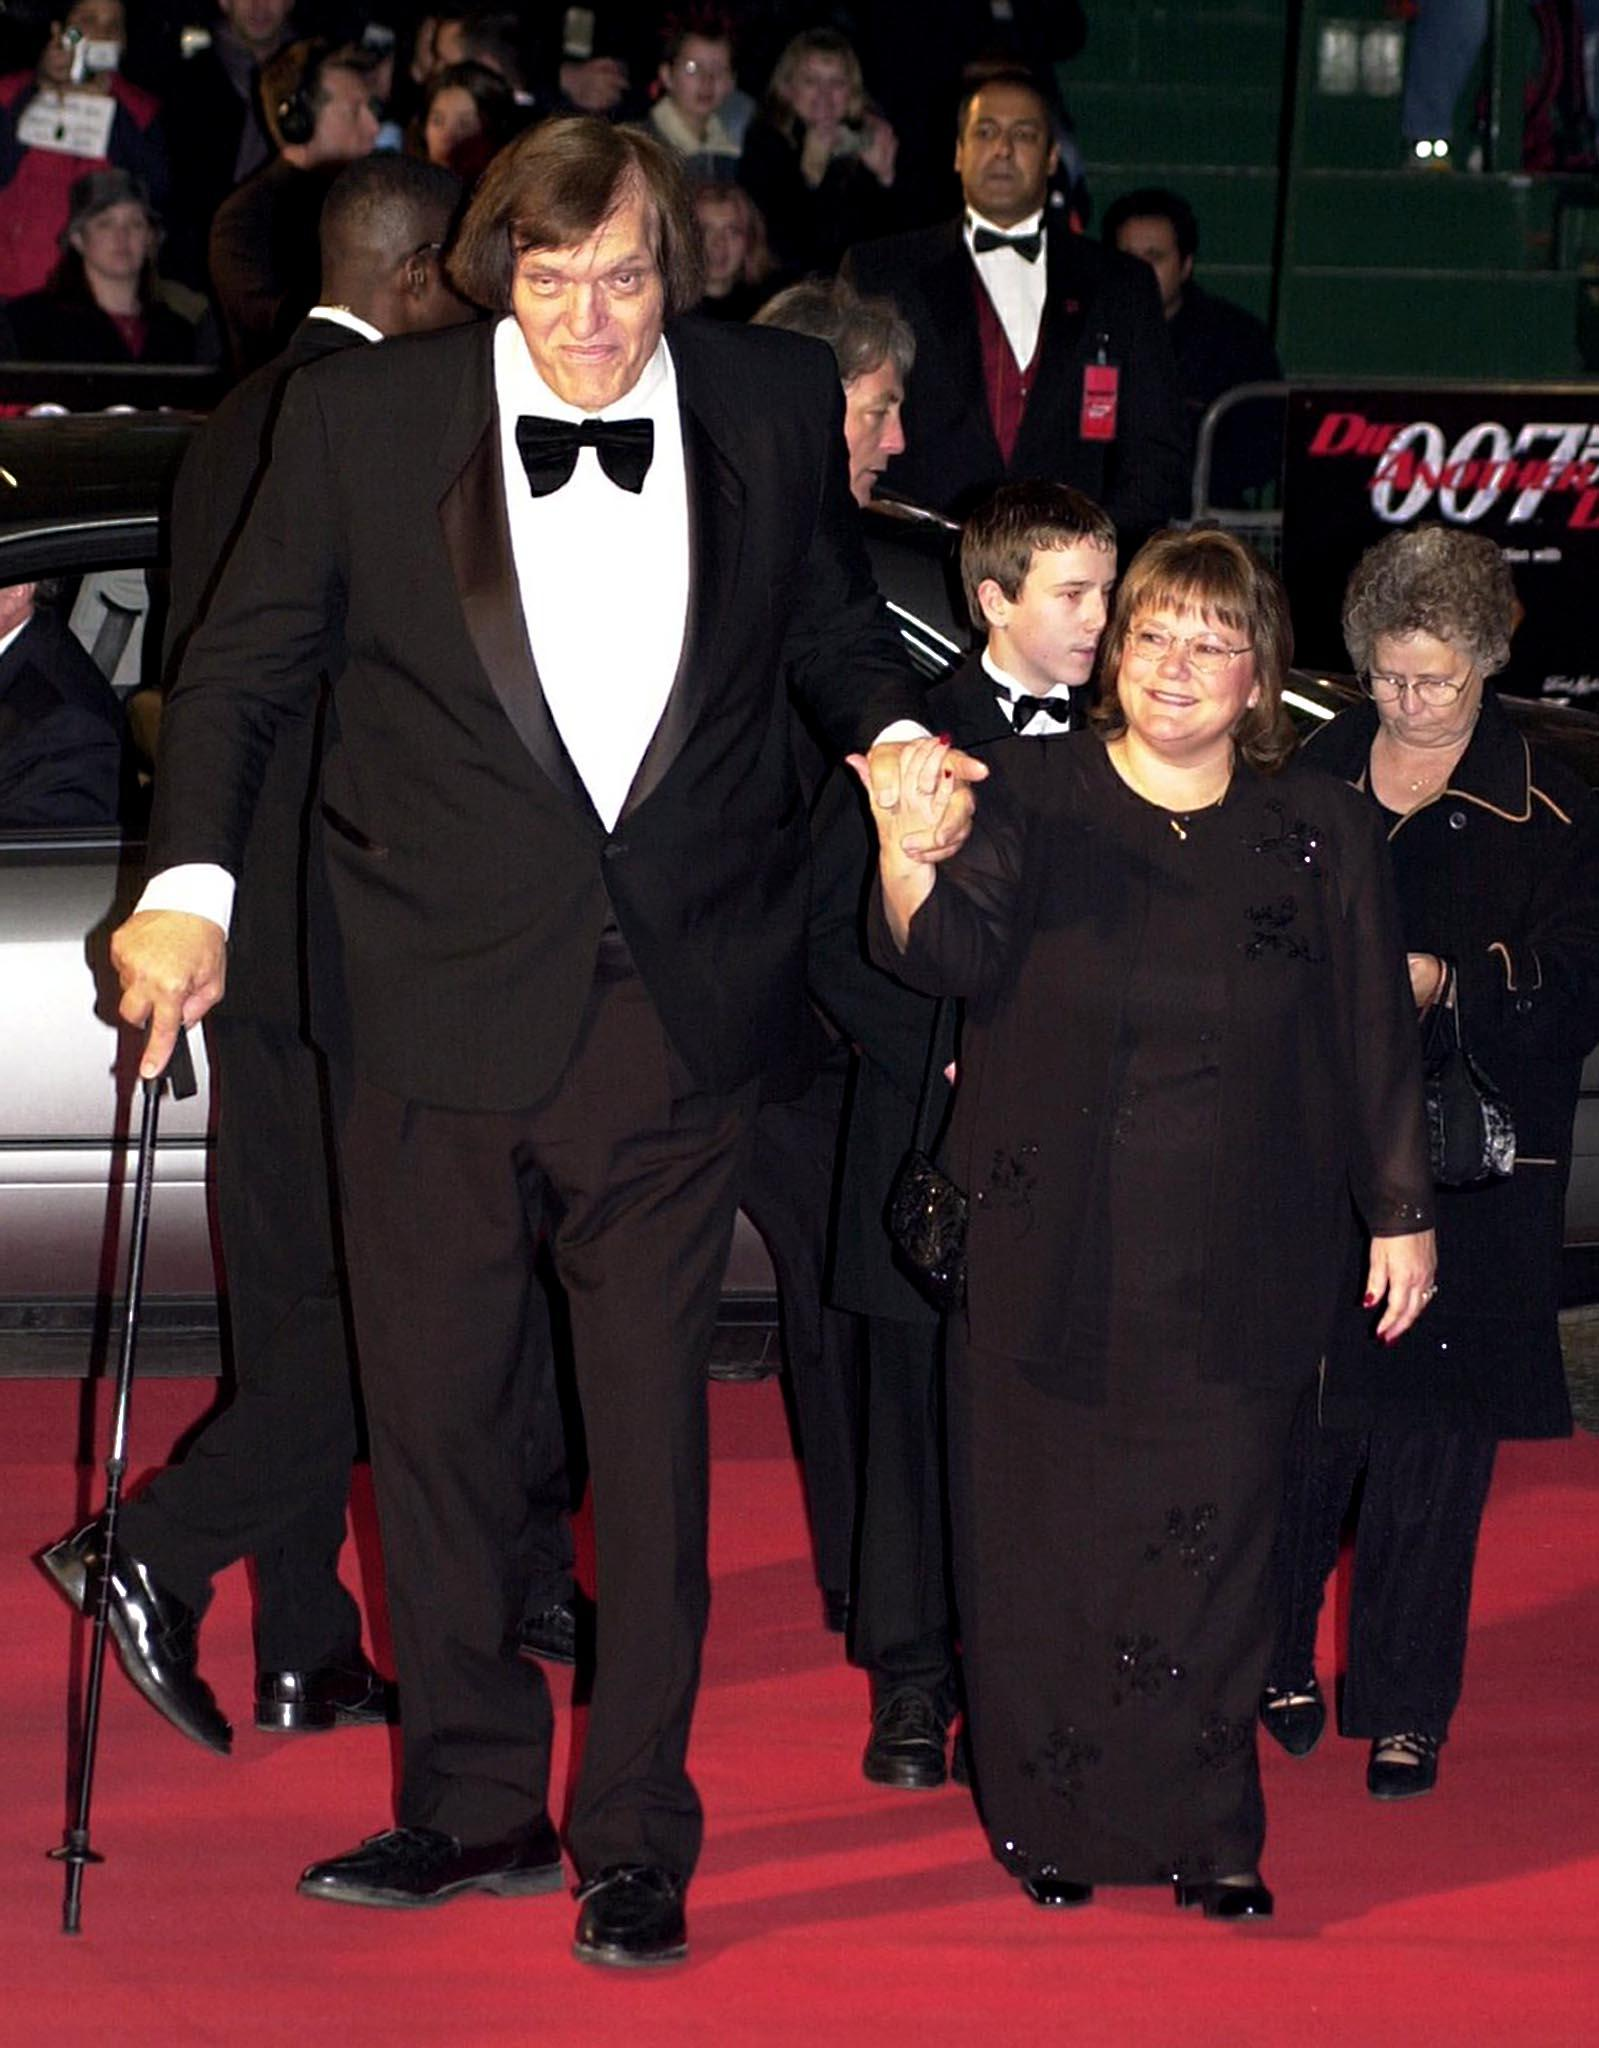 007 'Jaws' villain Richard Kiel dies aged 74